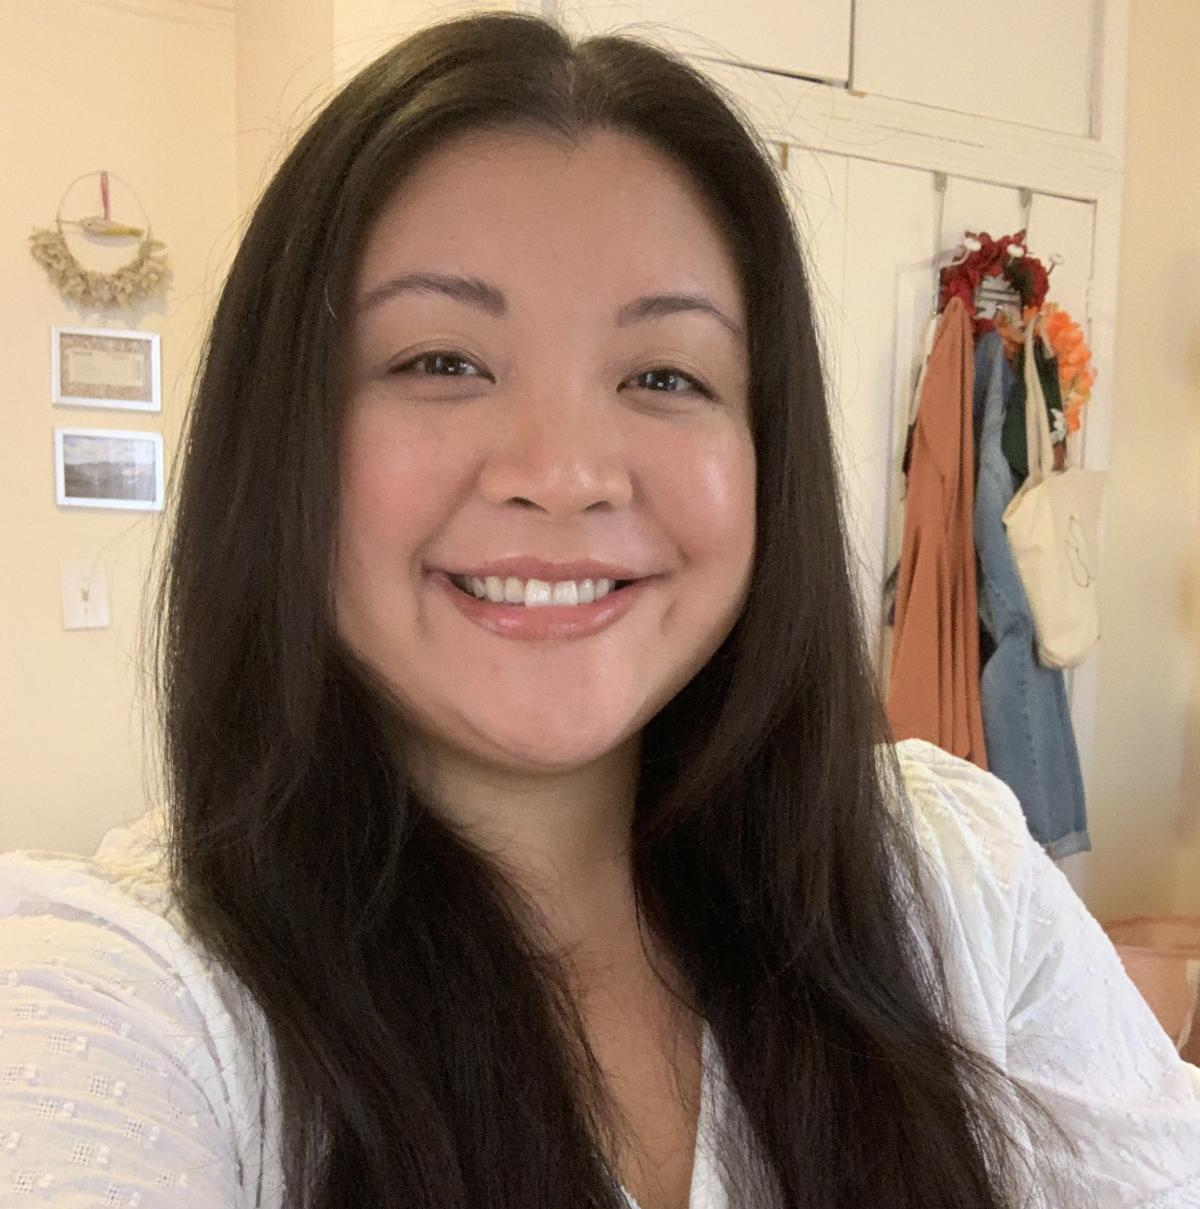 Stacey Mei Yan Fong was born in Singapore, raised in Indonesia and Hong Kong, and moved to the U.S to attend college in Georgia.